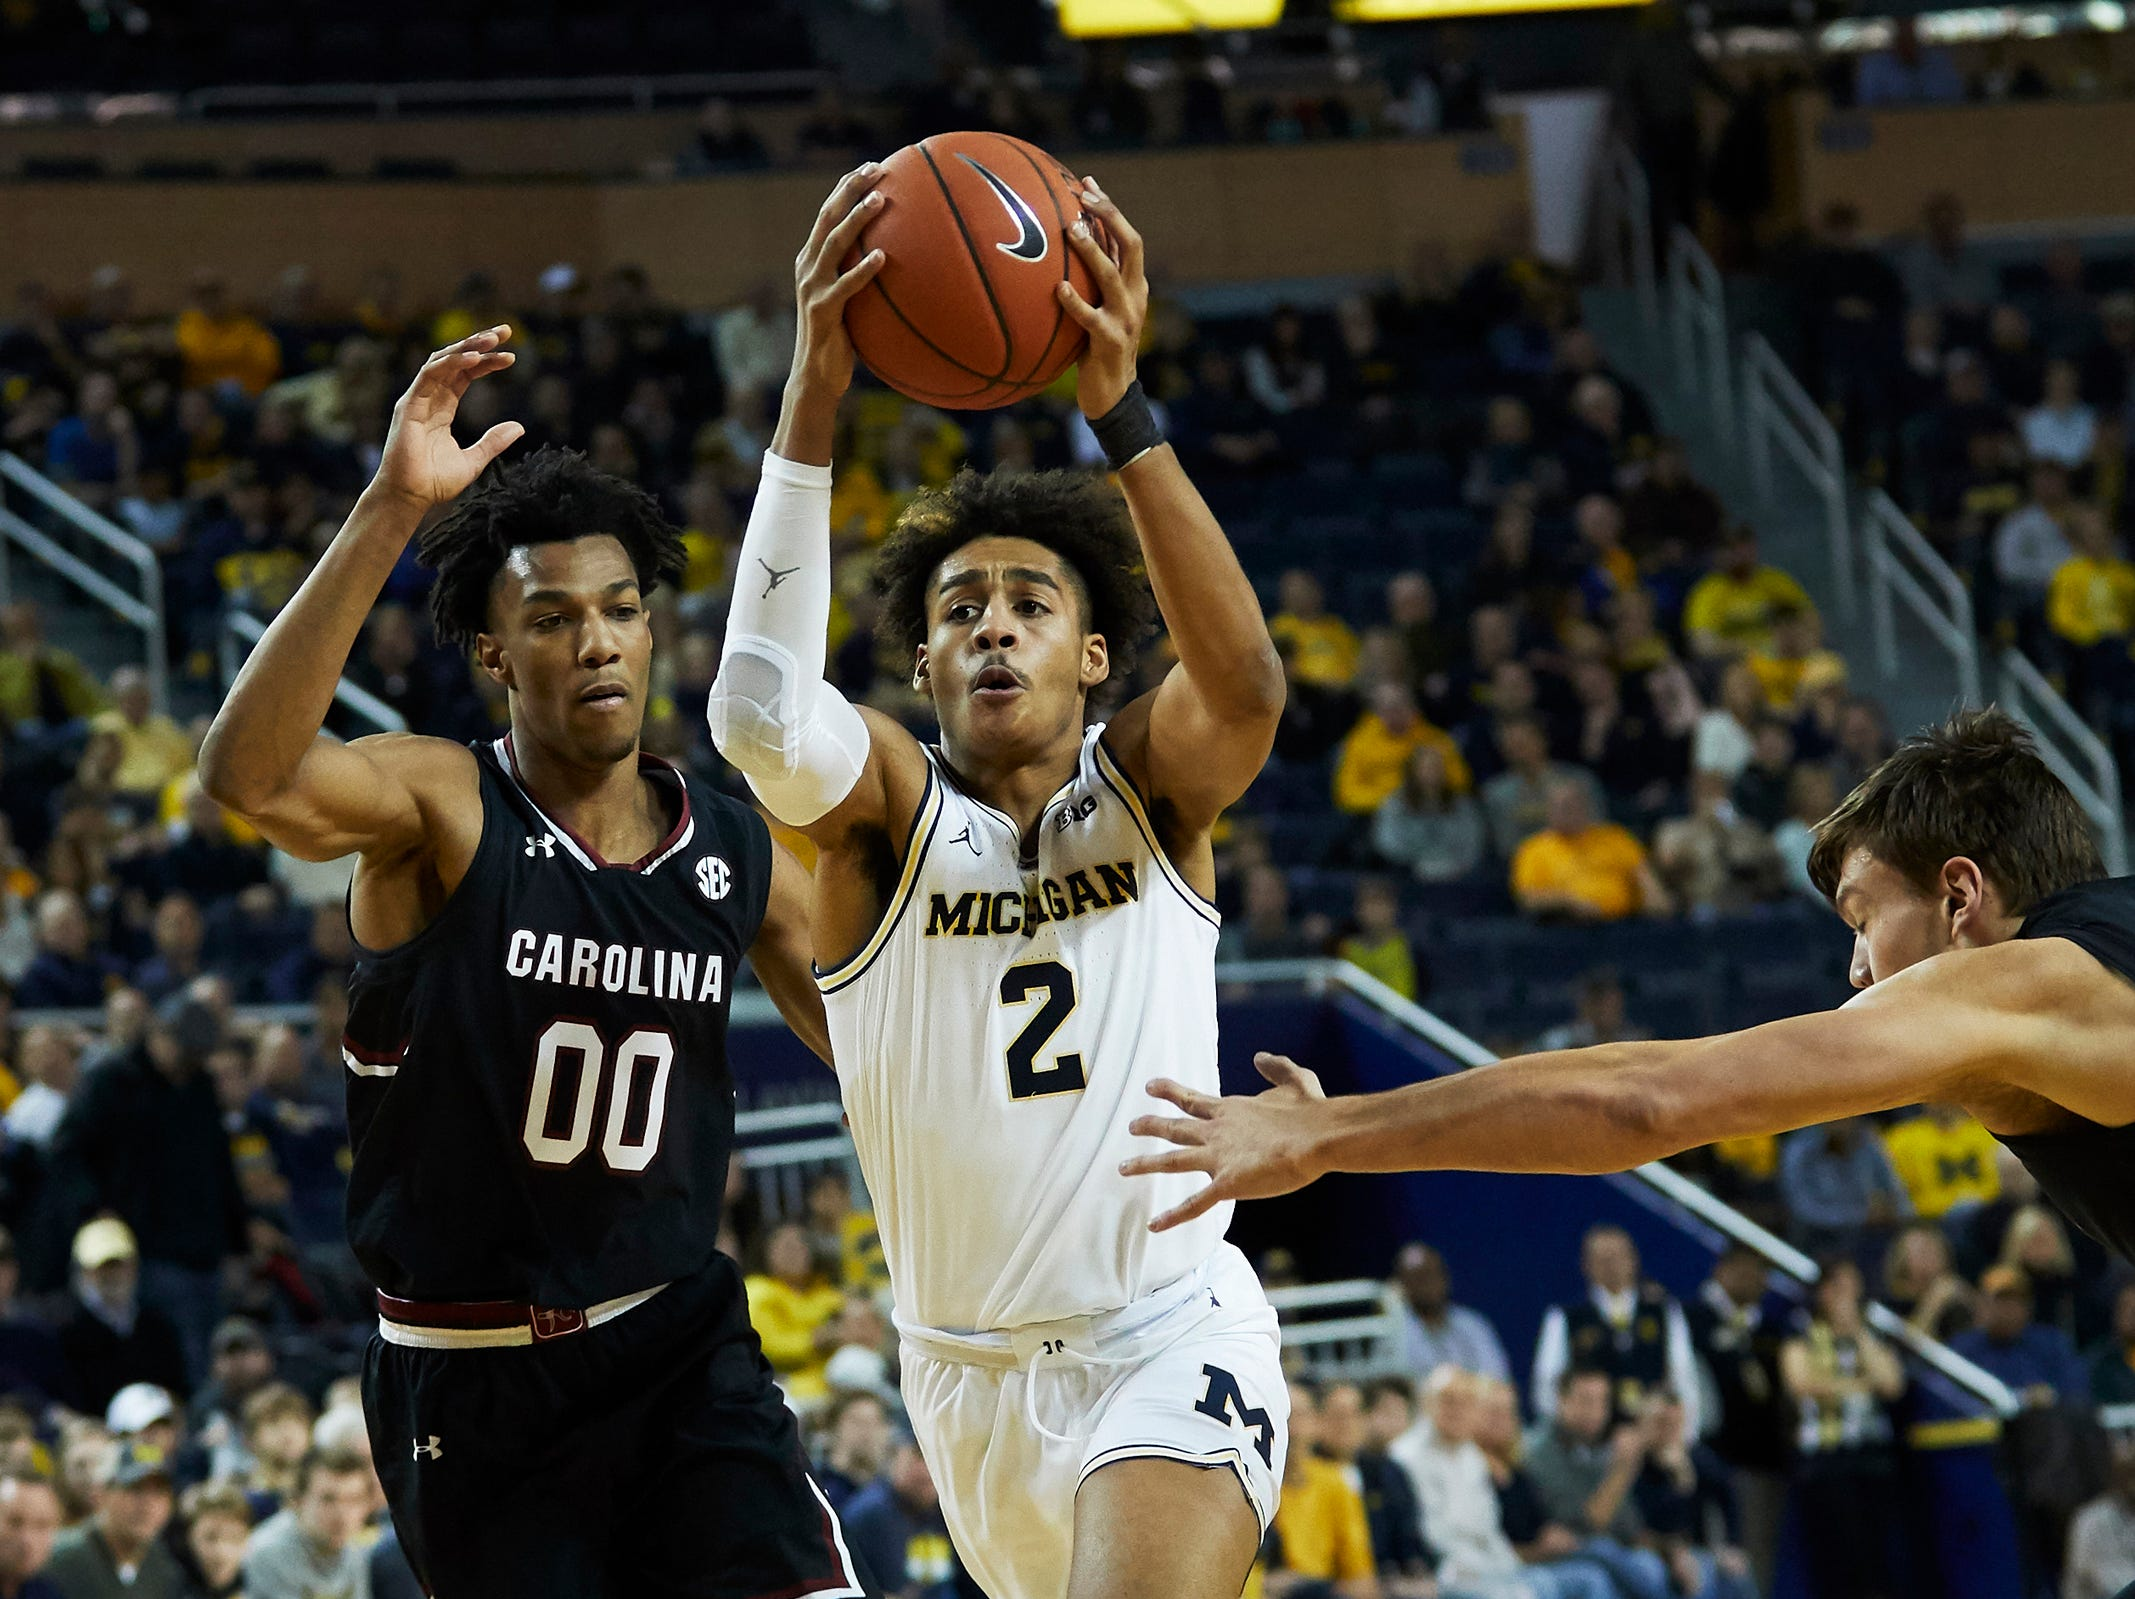 No. 1: Michigan Wolverines (10-0, 2-0). Sophomore guard Jordan Poole is averaging 13.3 points on 51.1 percent shooting from the floor and 46.9 percent shooting from distance (23-for-49).